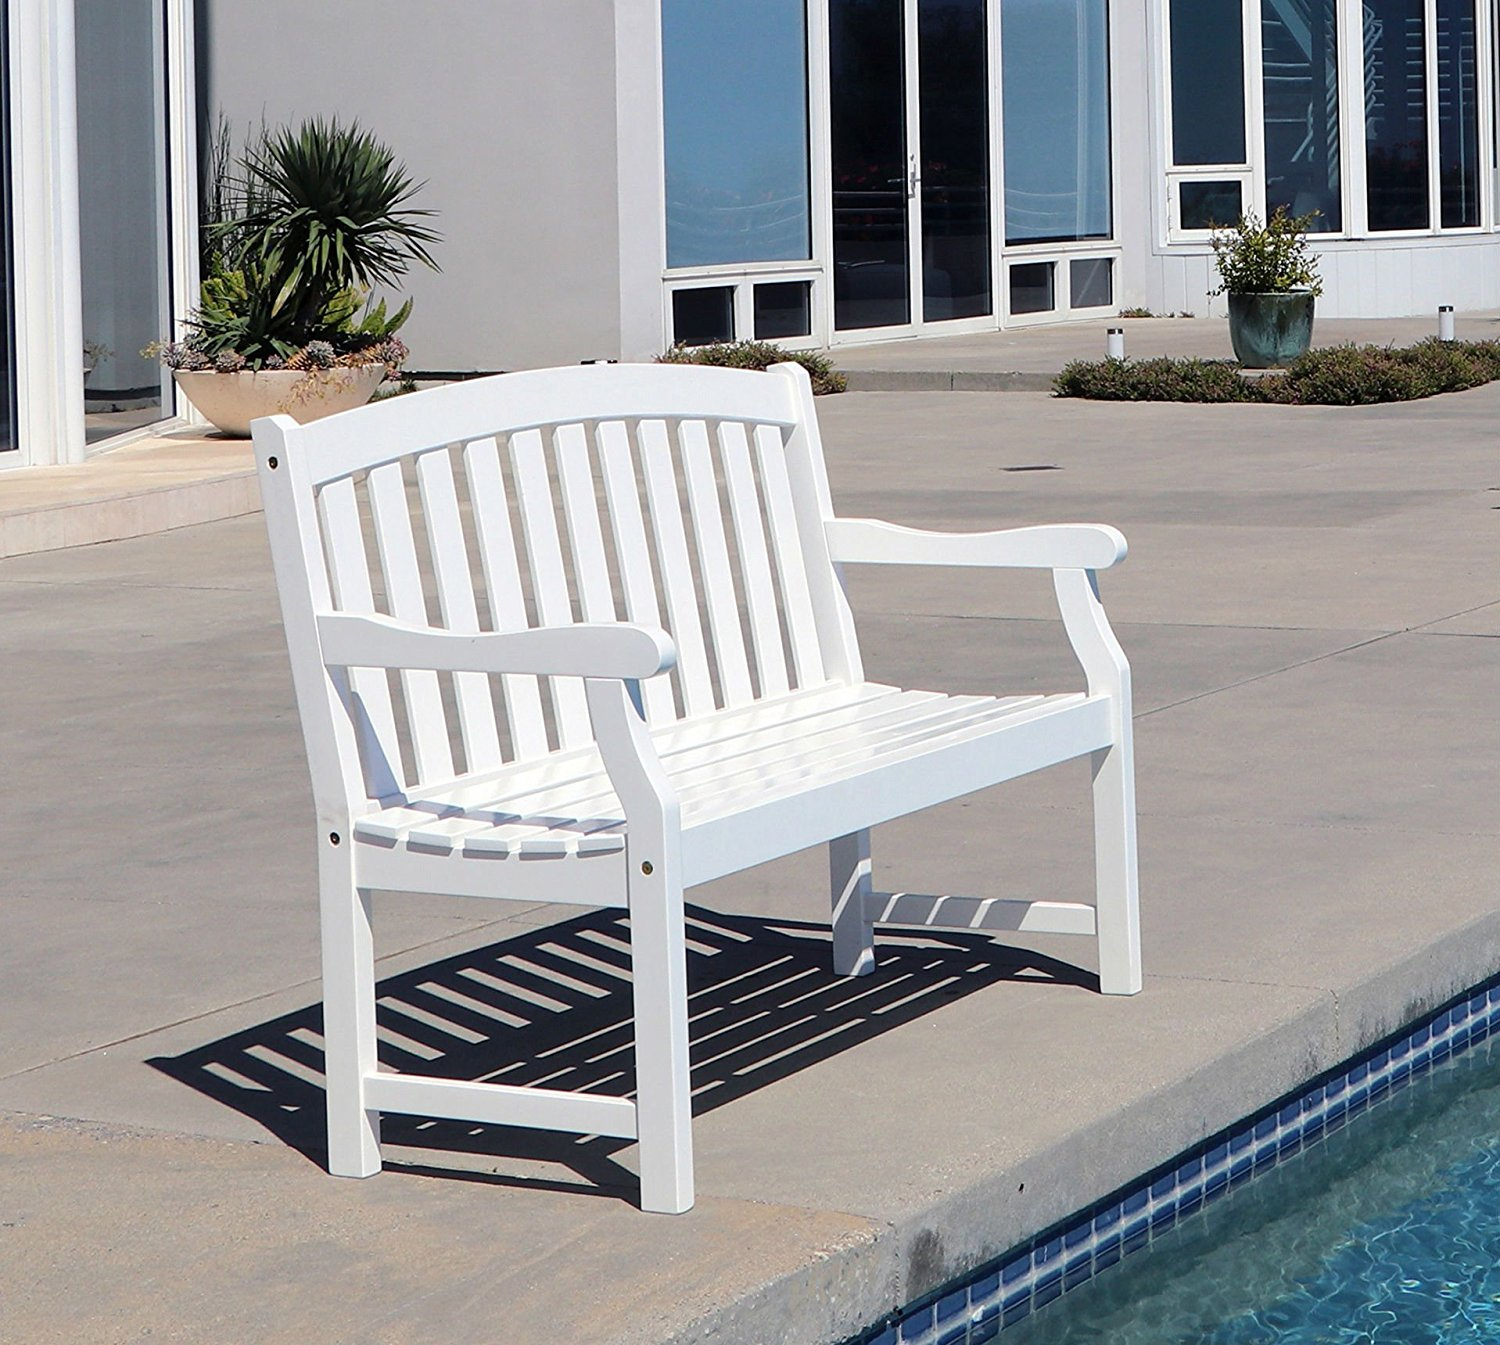 This White Wood Garden Bench features a classic weather resistant finish. This 2 seater is a great outdoor patio furniture piece. Perfect poolside or in any space, porch, patio or outside living area